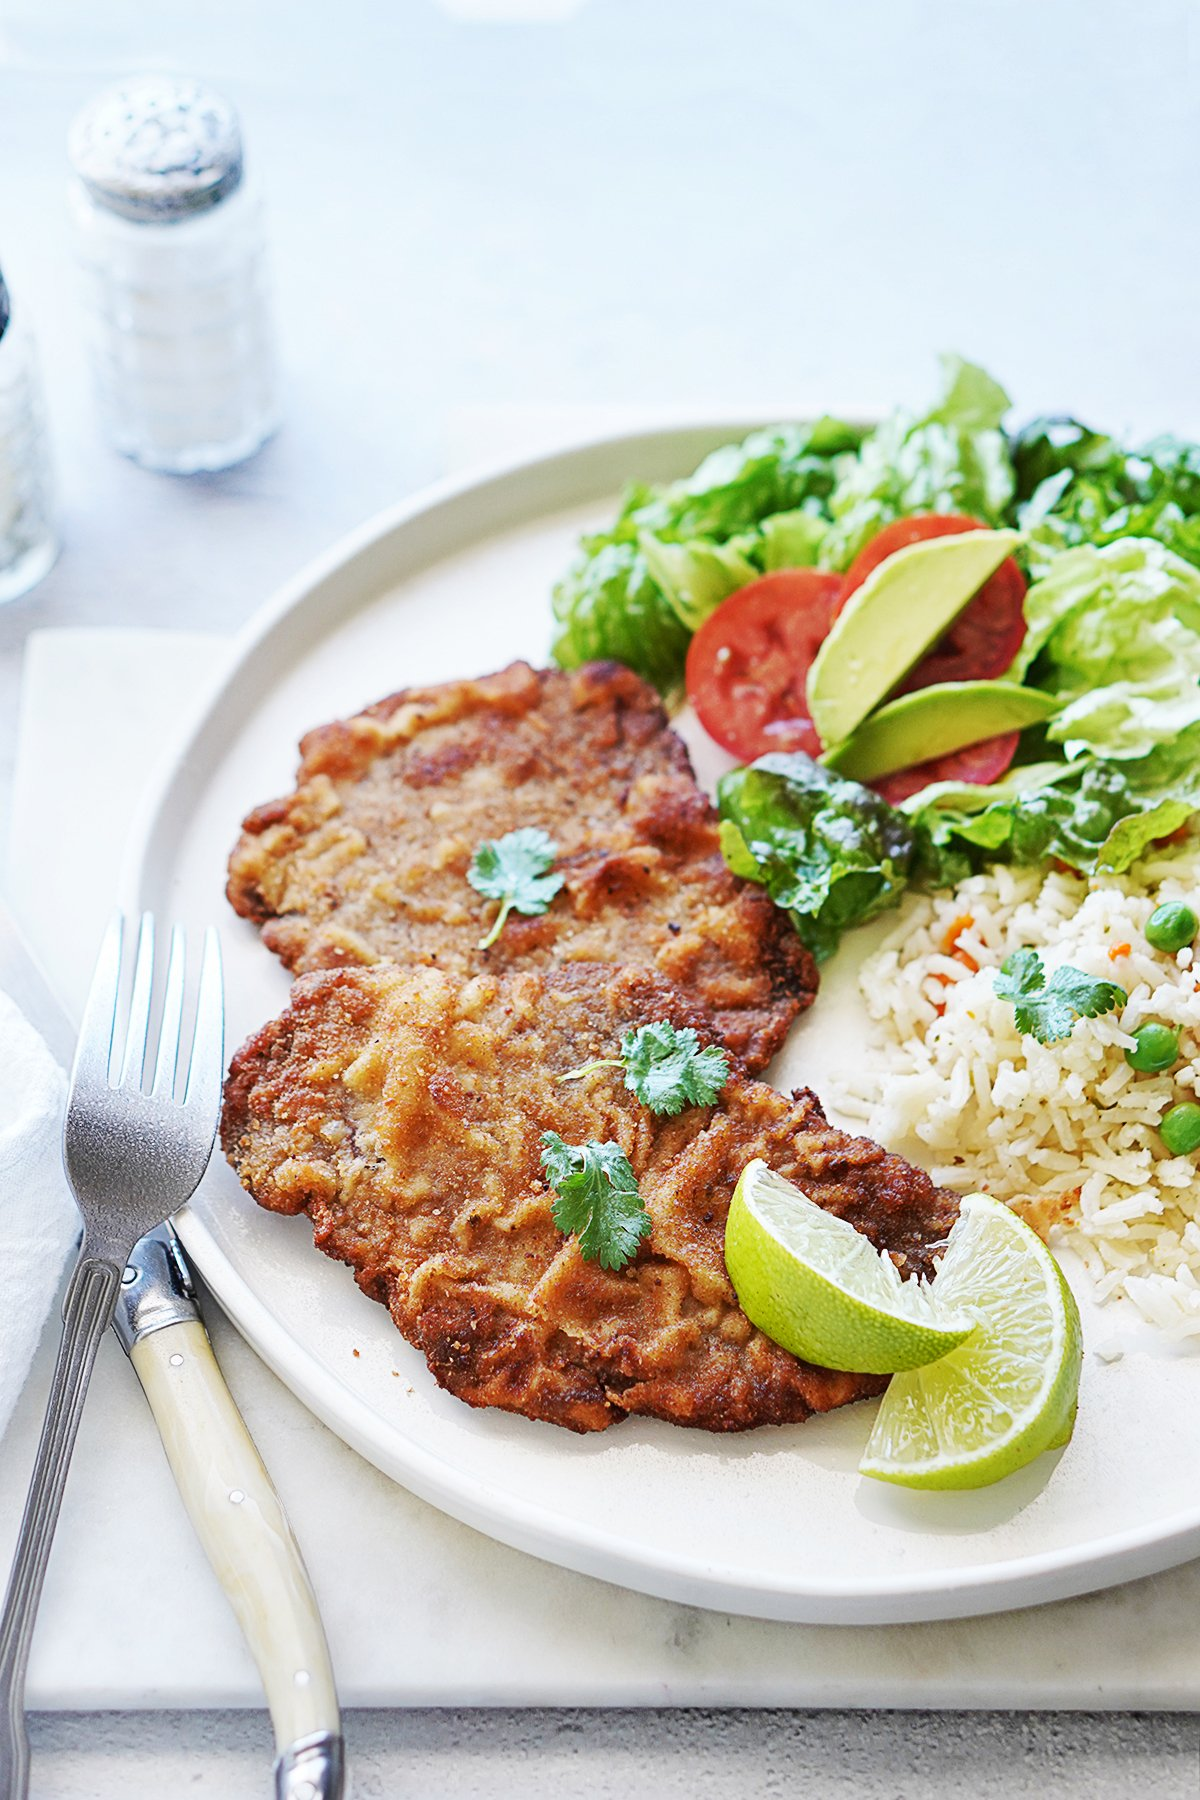 A plate with Milanesa, salad and white rice with a fork and knife on the side